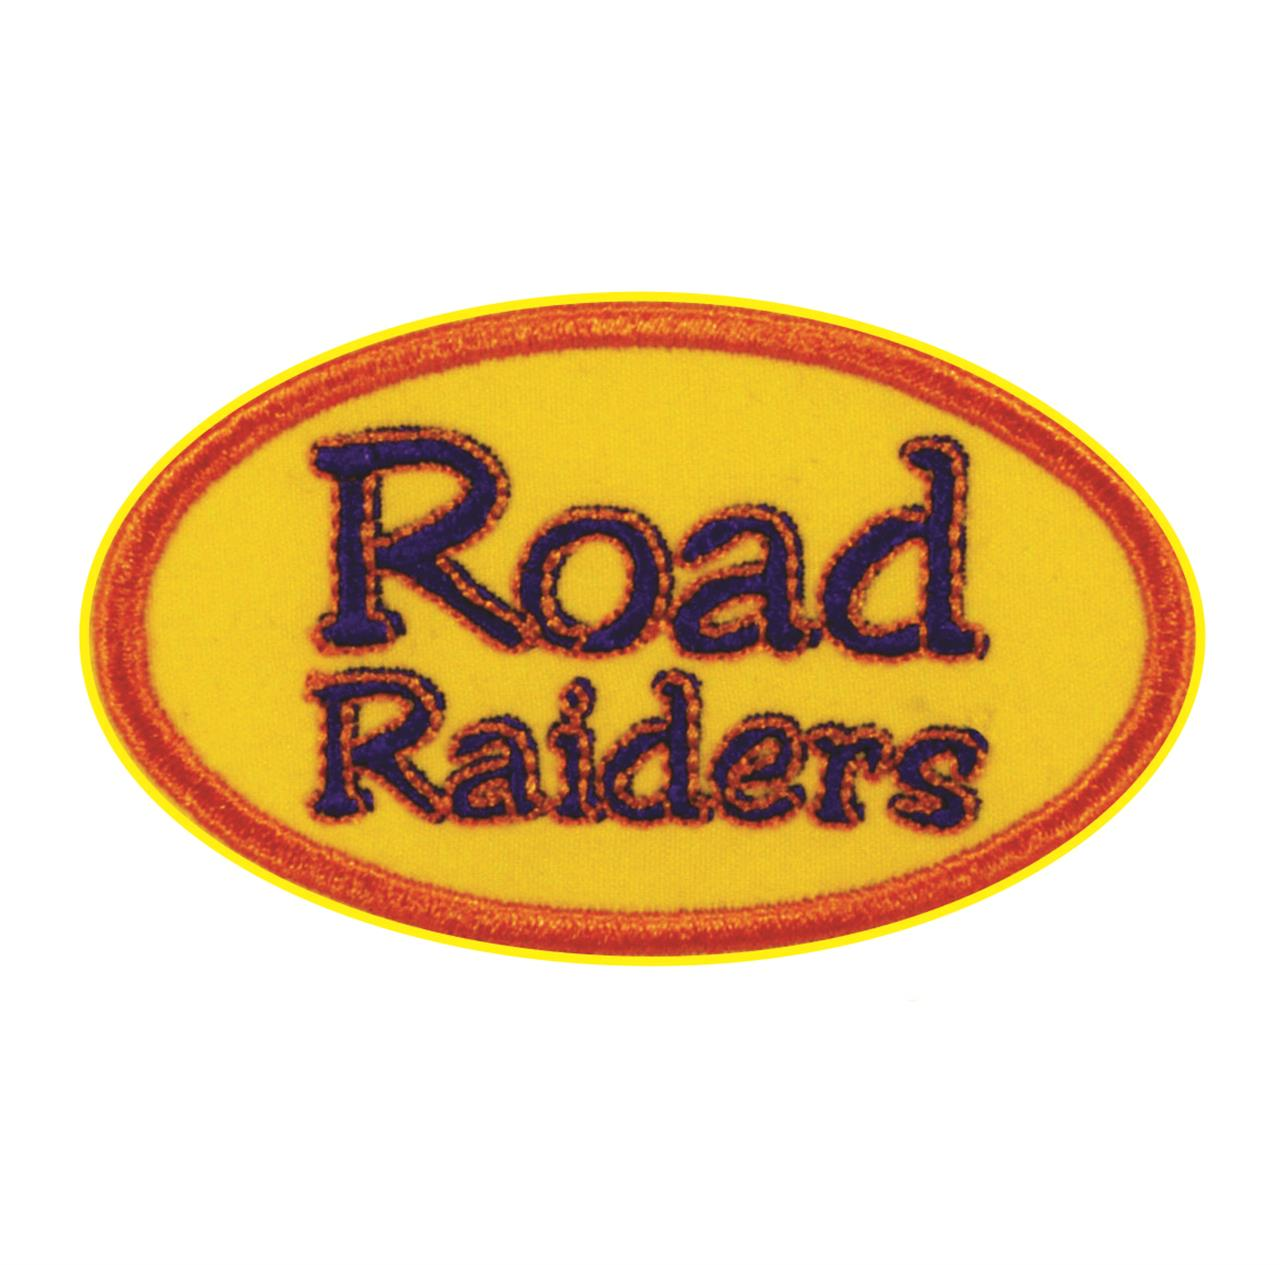 "Termocolante ""Road Raiders"" Amarelo"